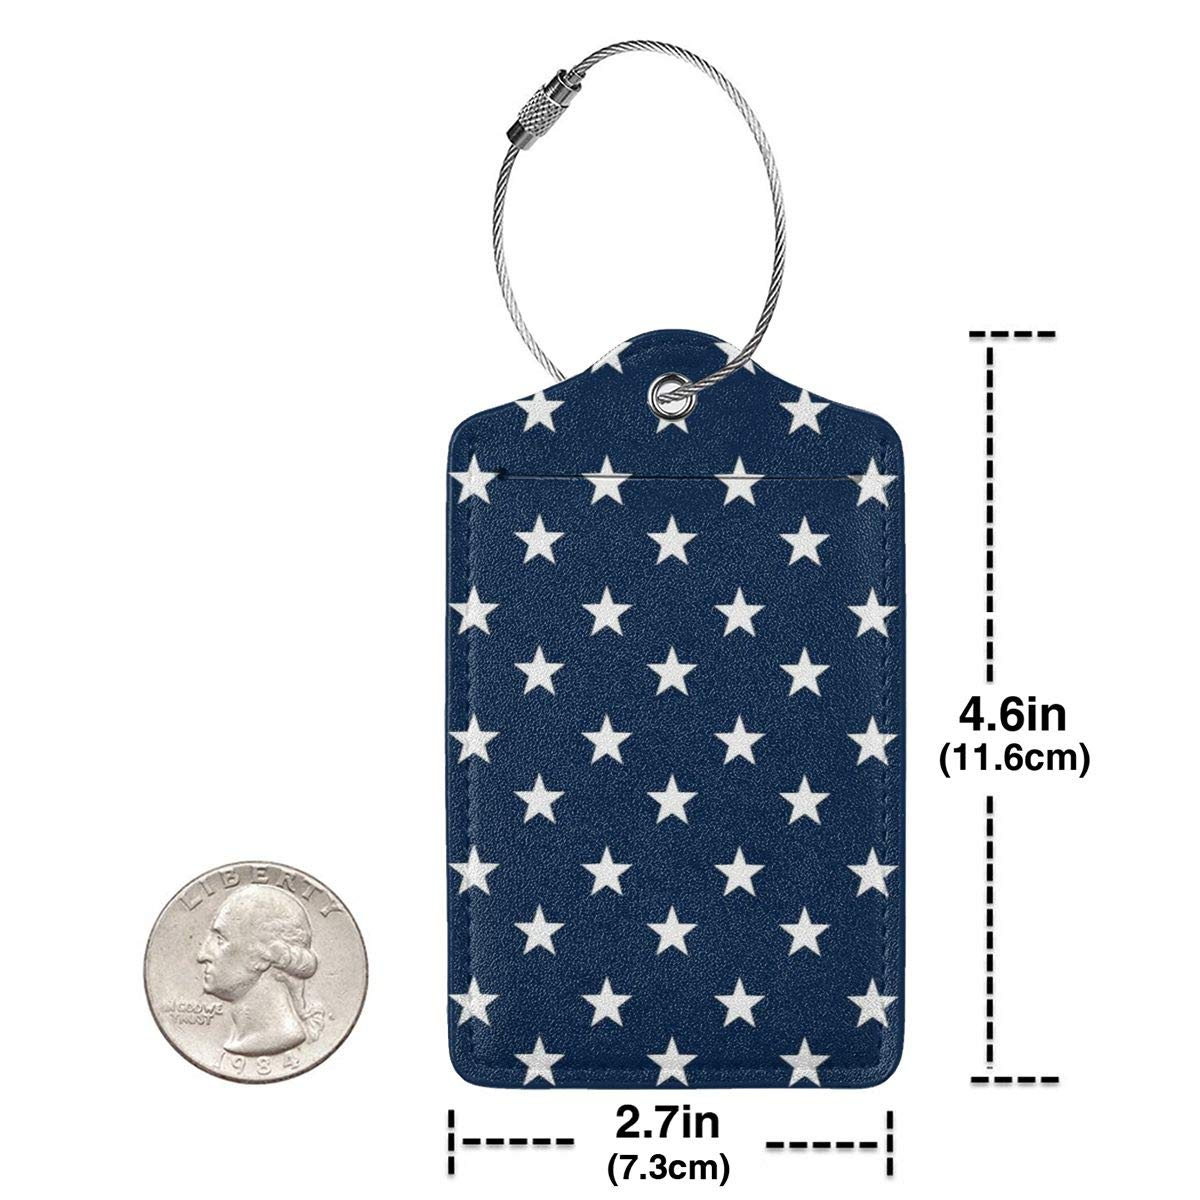 Leather Luggage Tag Dark Blue Stars Luggage Tags For Suitcase Travel Lover Gifts For Men Women 2 PCS